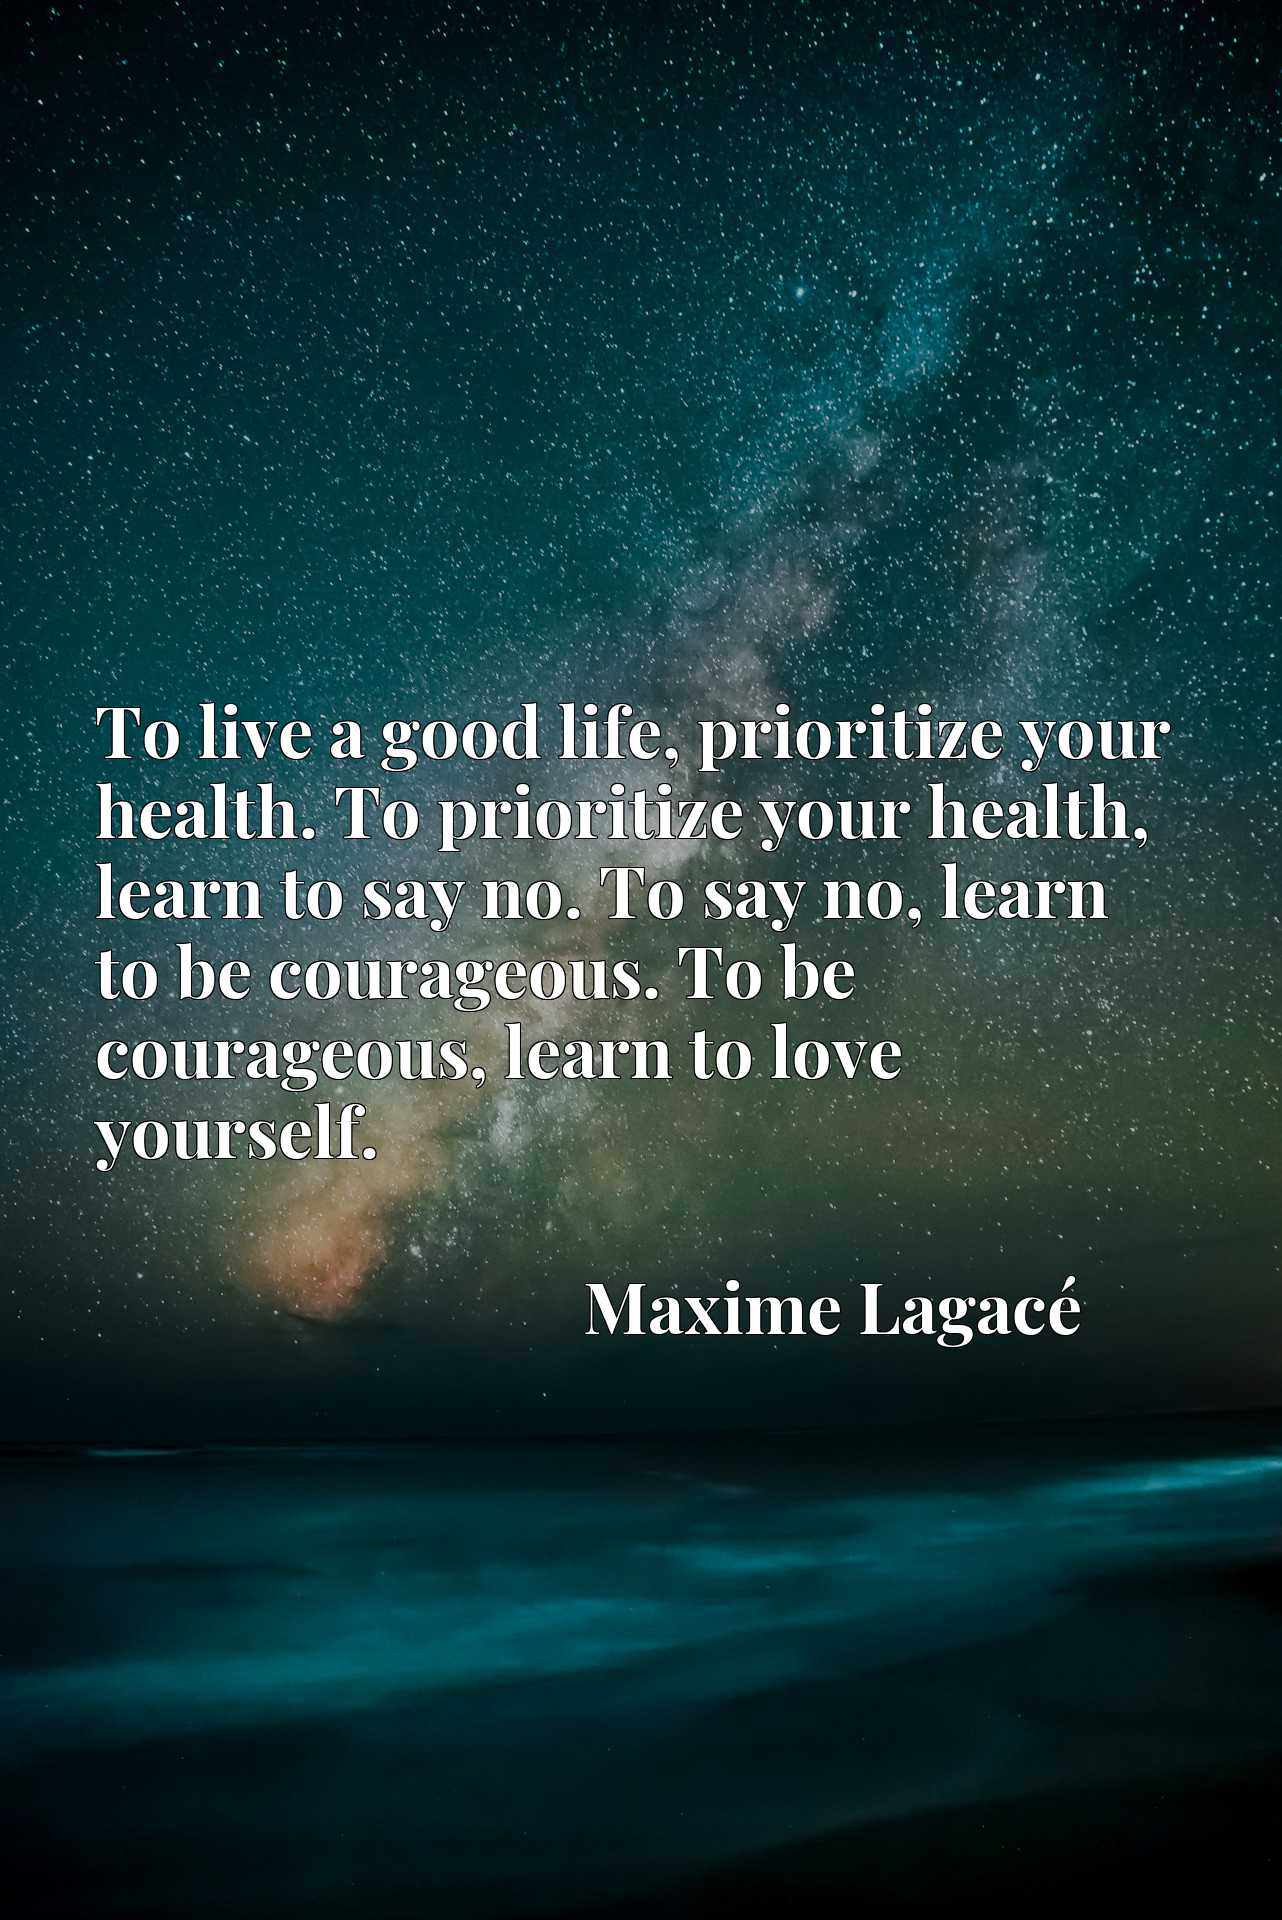 To live a good life, prioritize your health. To prioritize your health, learn to say no. To say no, learn to be courageous. To be courageous, learn to love yourself.